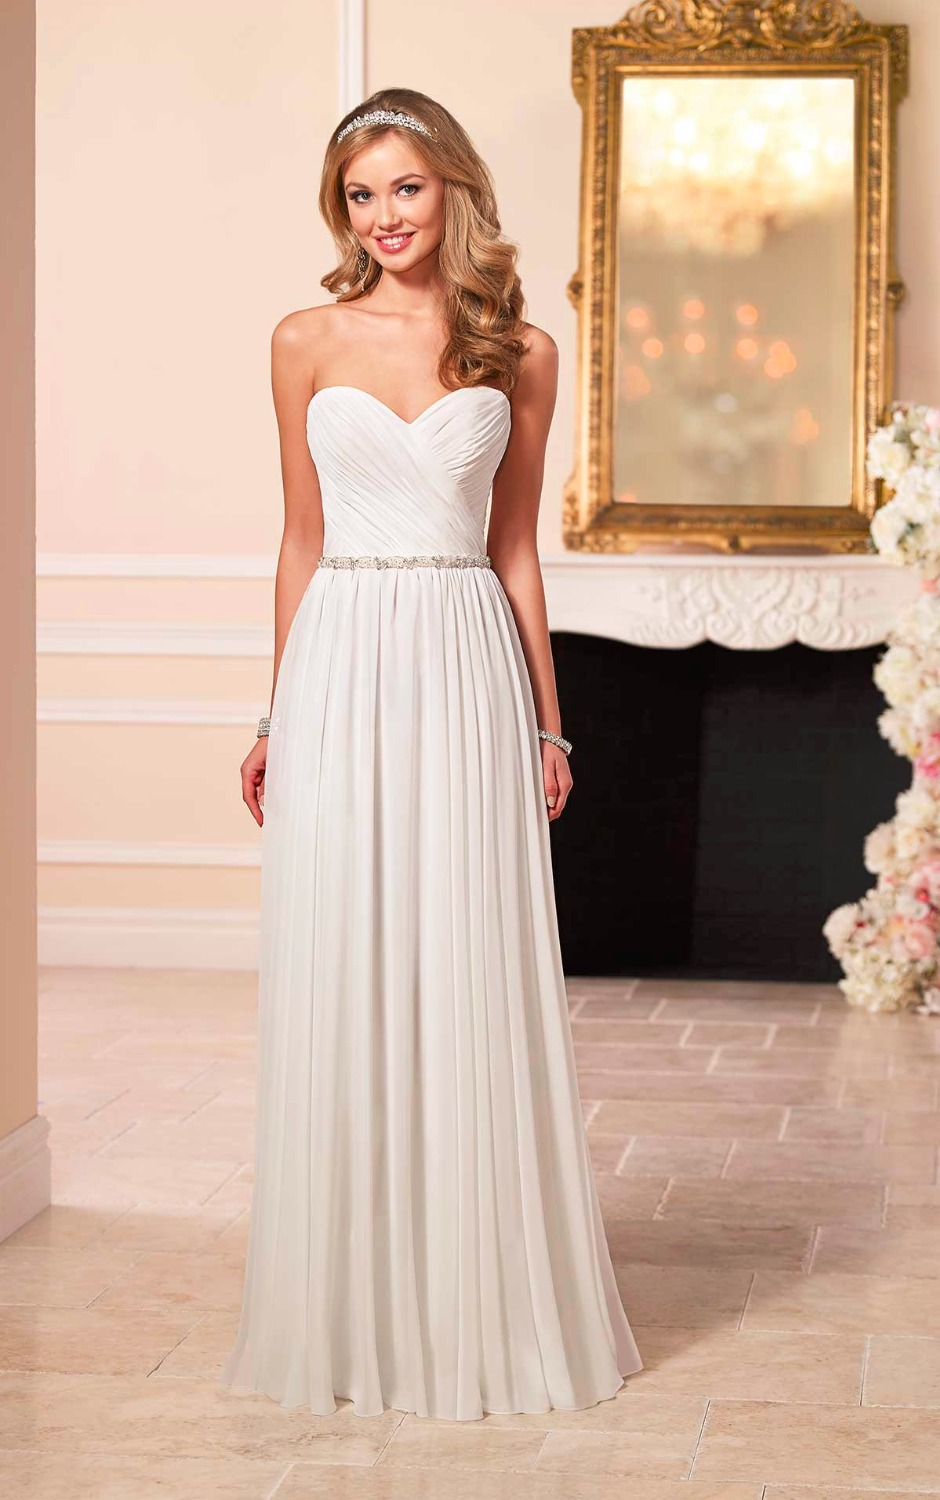 Destination Wedding Mother Of The Bride Dresses